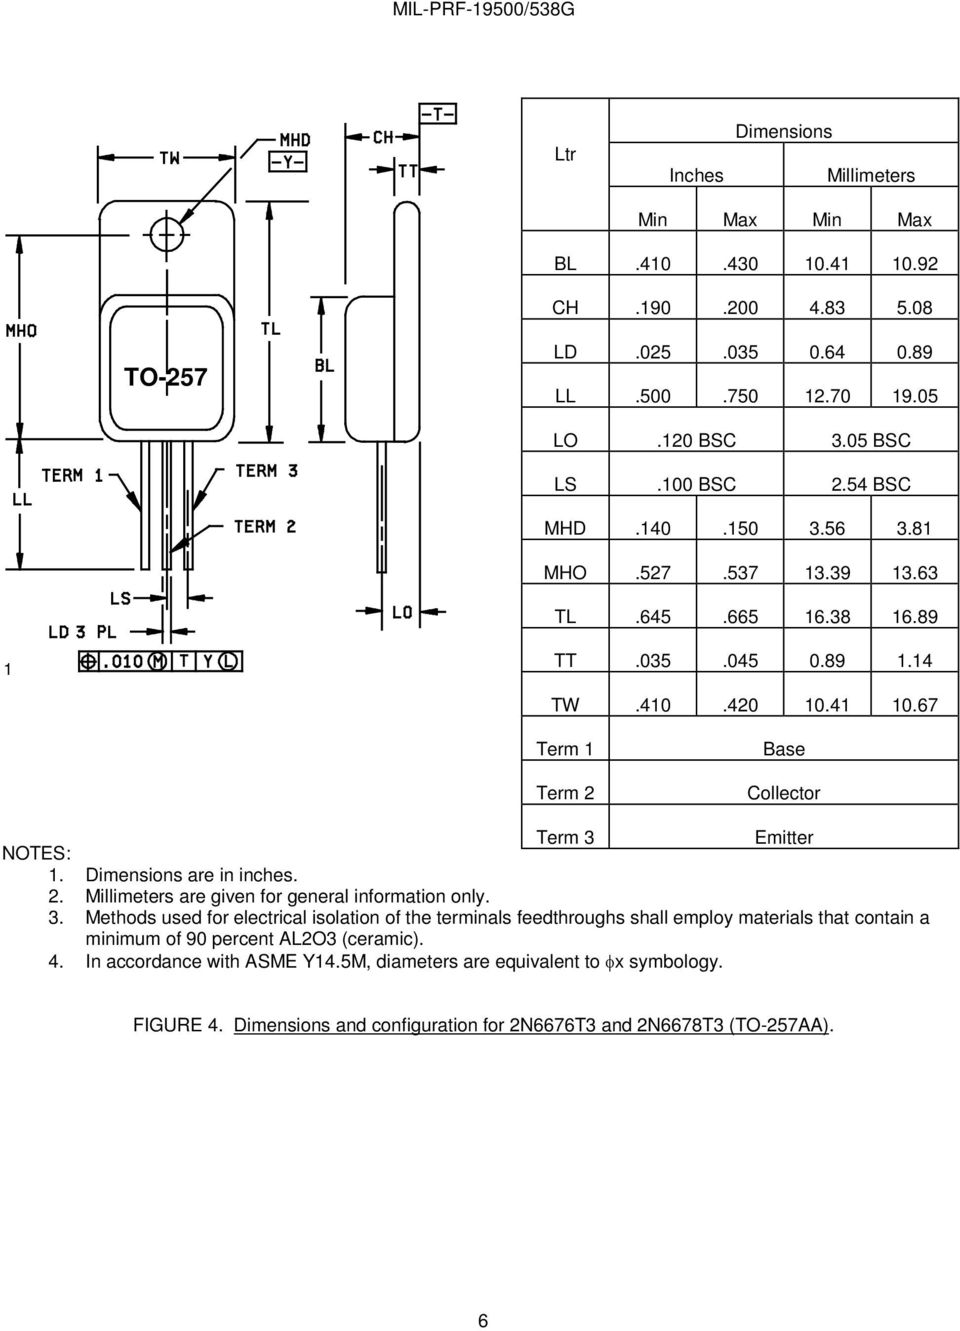 Performance Specification Sheet Pdf Light Relay Switch By Bc547 Amp Bc337 Dimensions Are In Inches 2 Millimeters Given For General Information Only 3